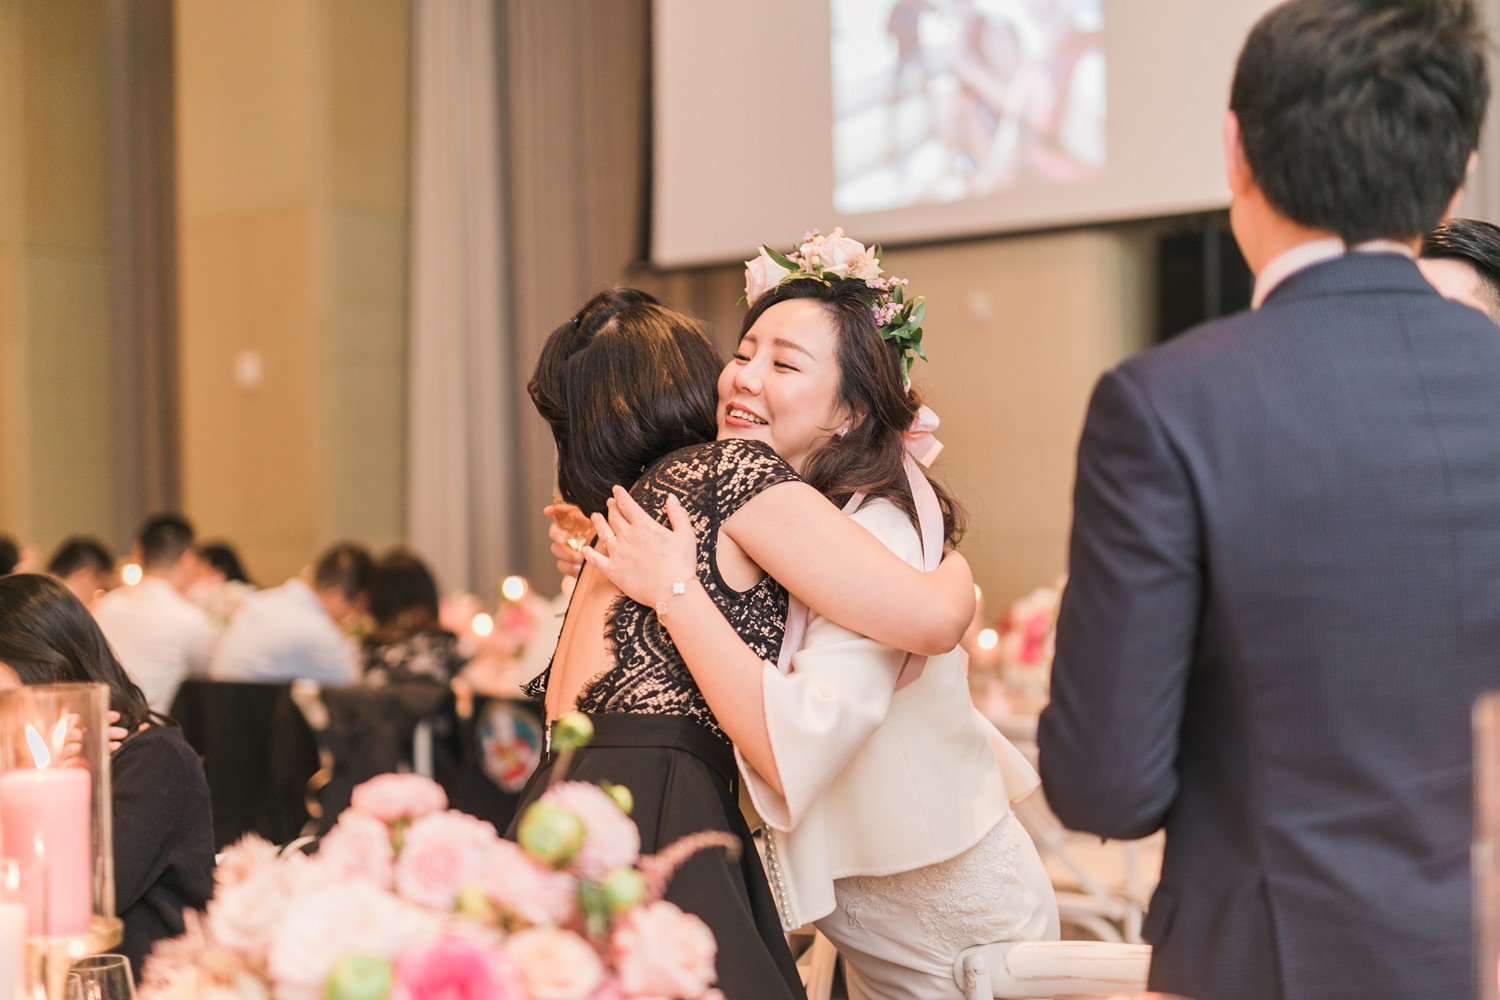 Wedding Candid Moments Vinci Room Luxury Yorkville Toronto Four Season Hotel Wedding Photos with Chinese Bride and Groom